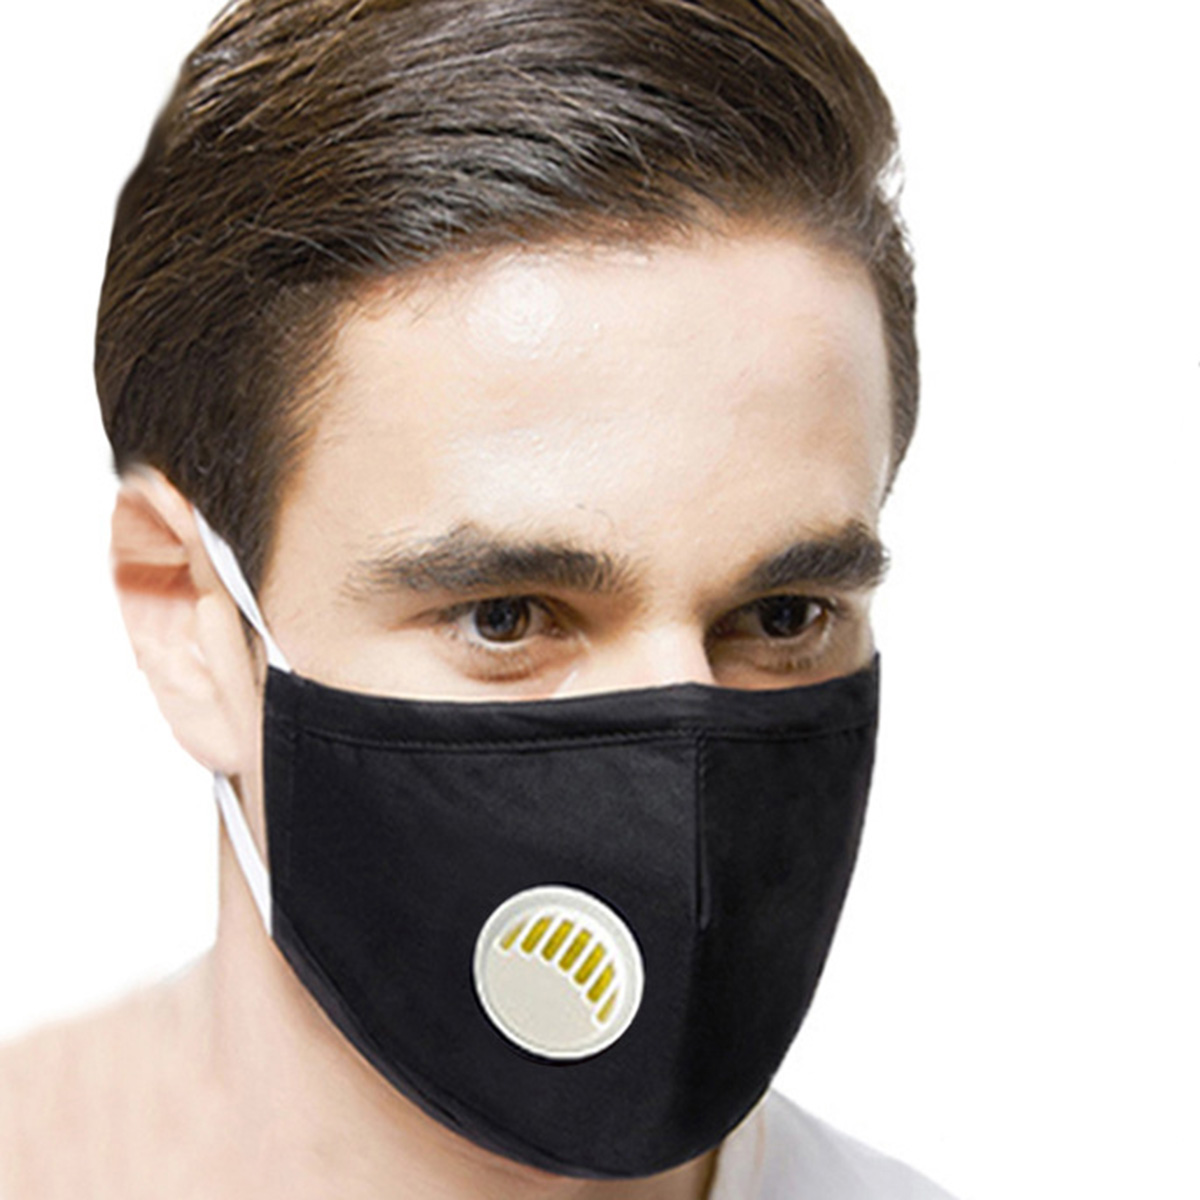 PM2.5 Cotton Face Mask Anti-dust Anti-mist Anti-haze Protective Mouth Mask Dust Respirator